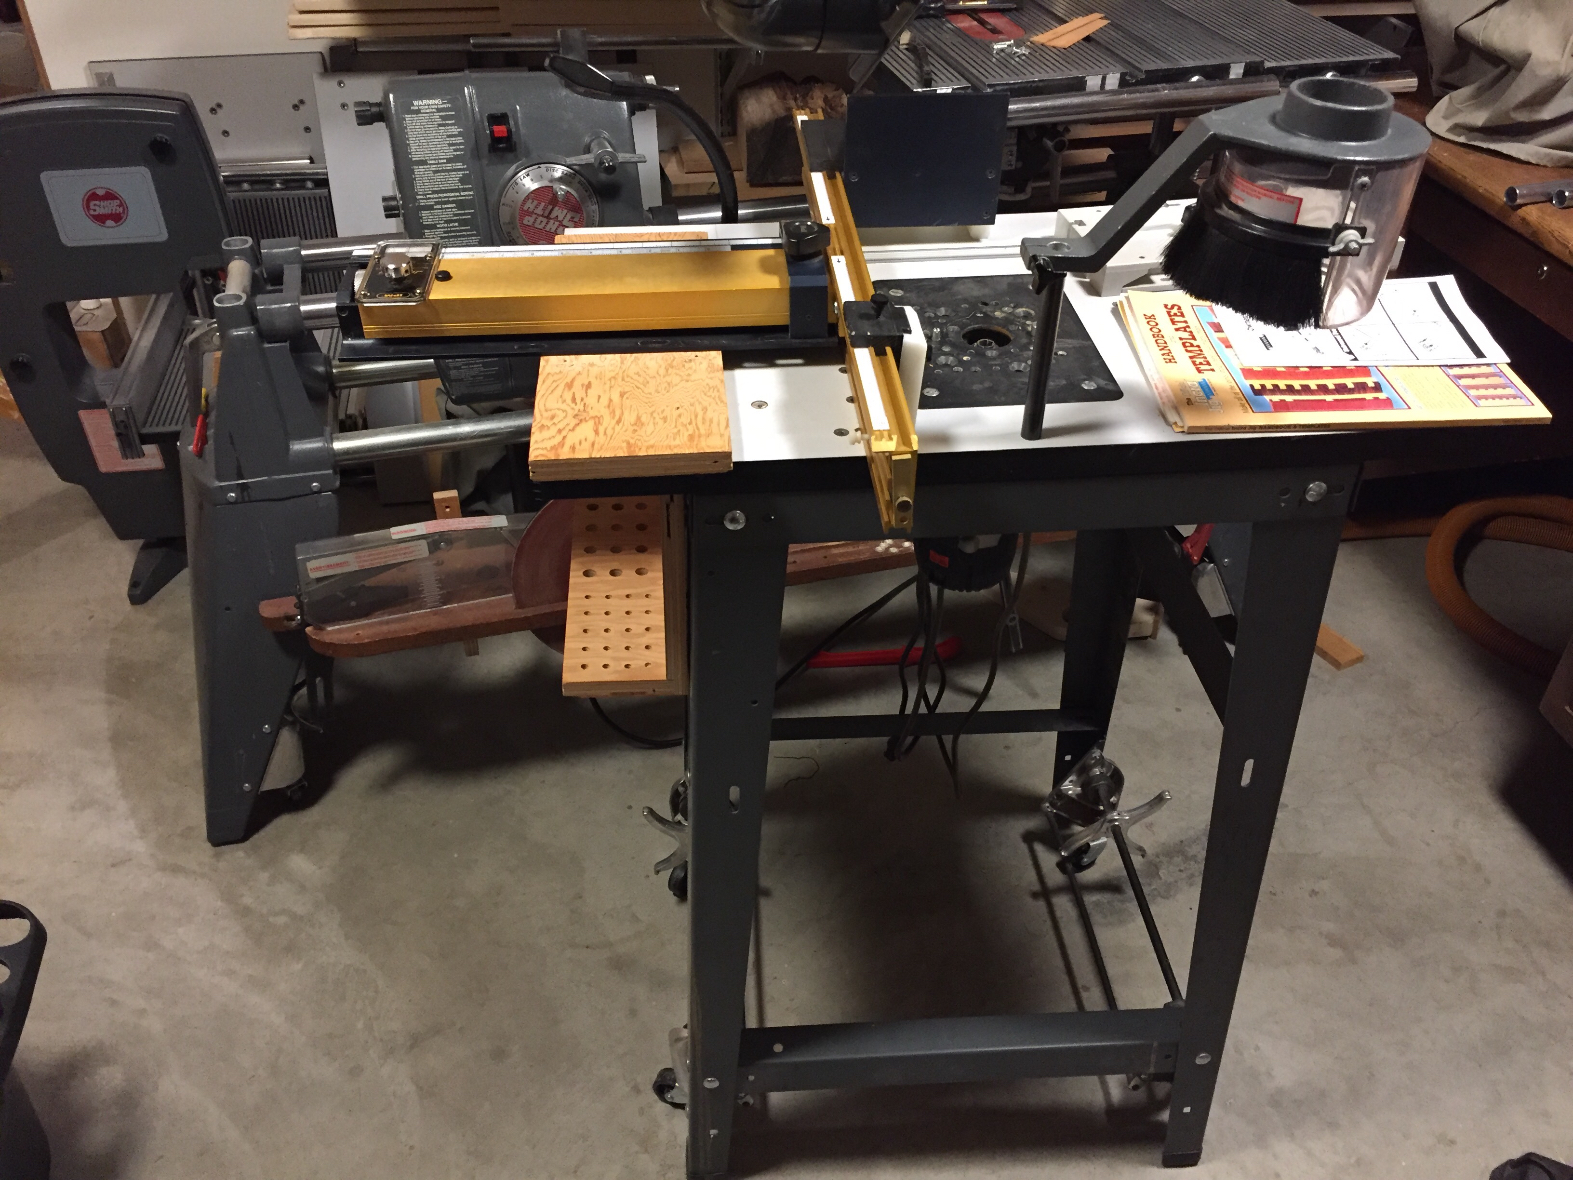 Shopsmith Forums Sharing Information About Woodworking And Shopsmith Tools